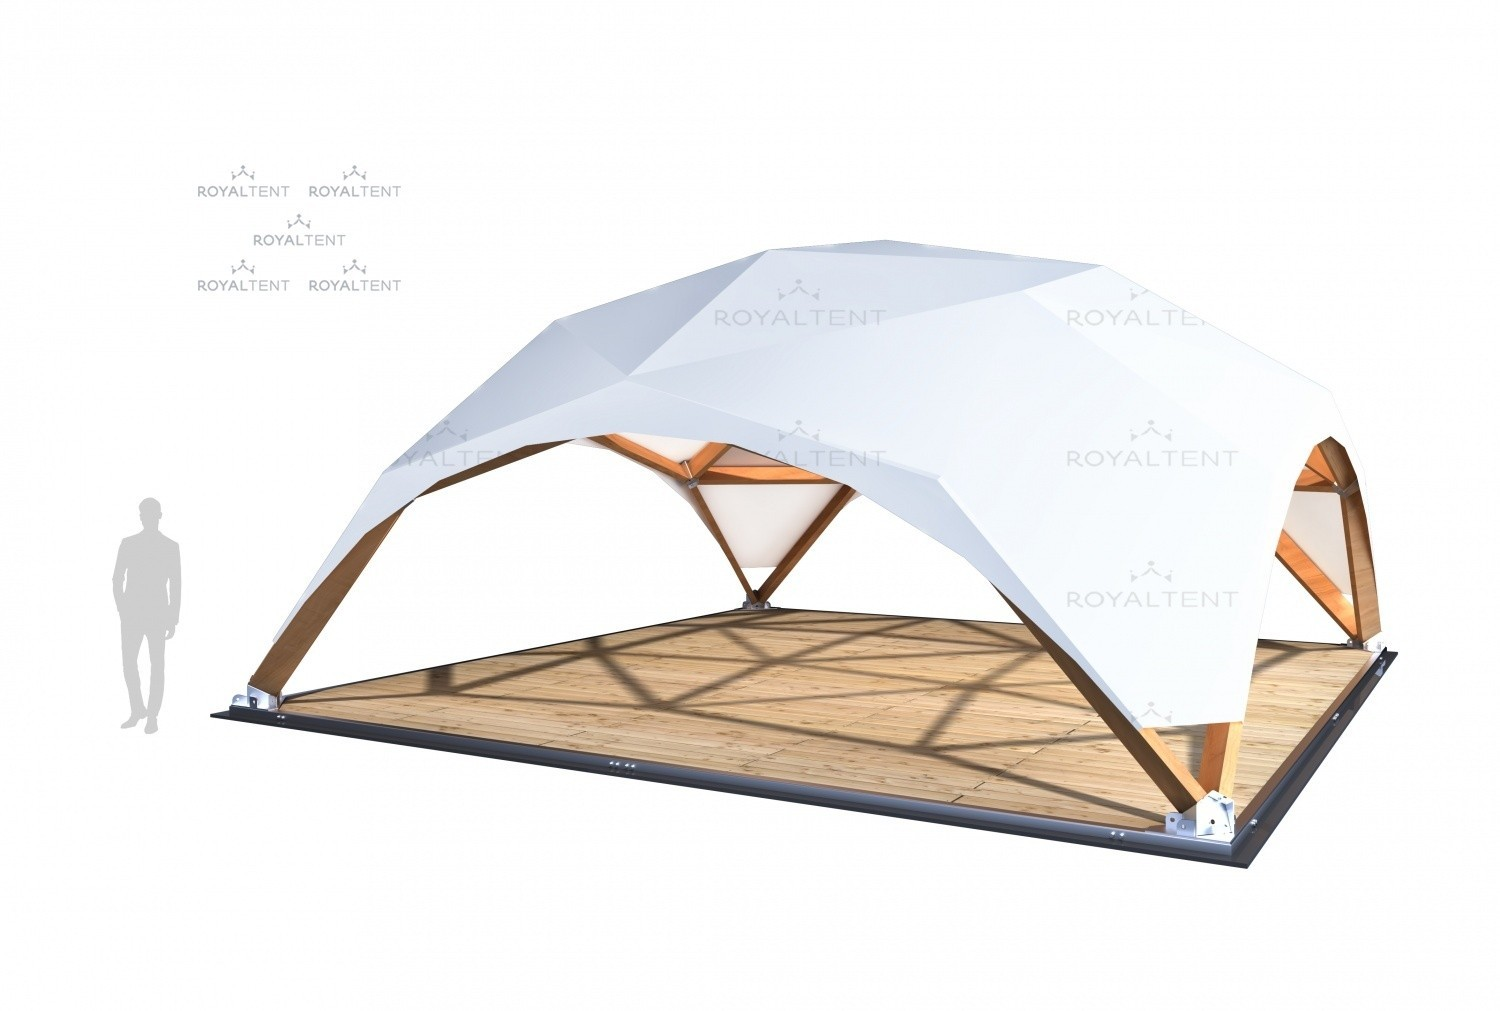 https://royaltent.me/houses_images/wooden_tent_wood_8x8_200729073137.jpg